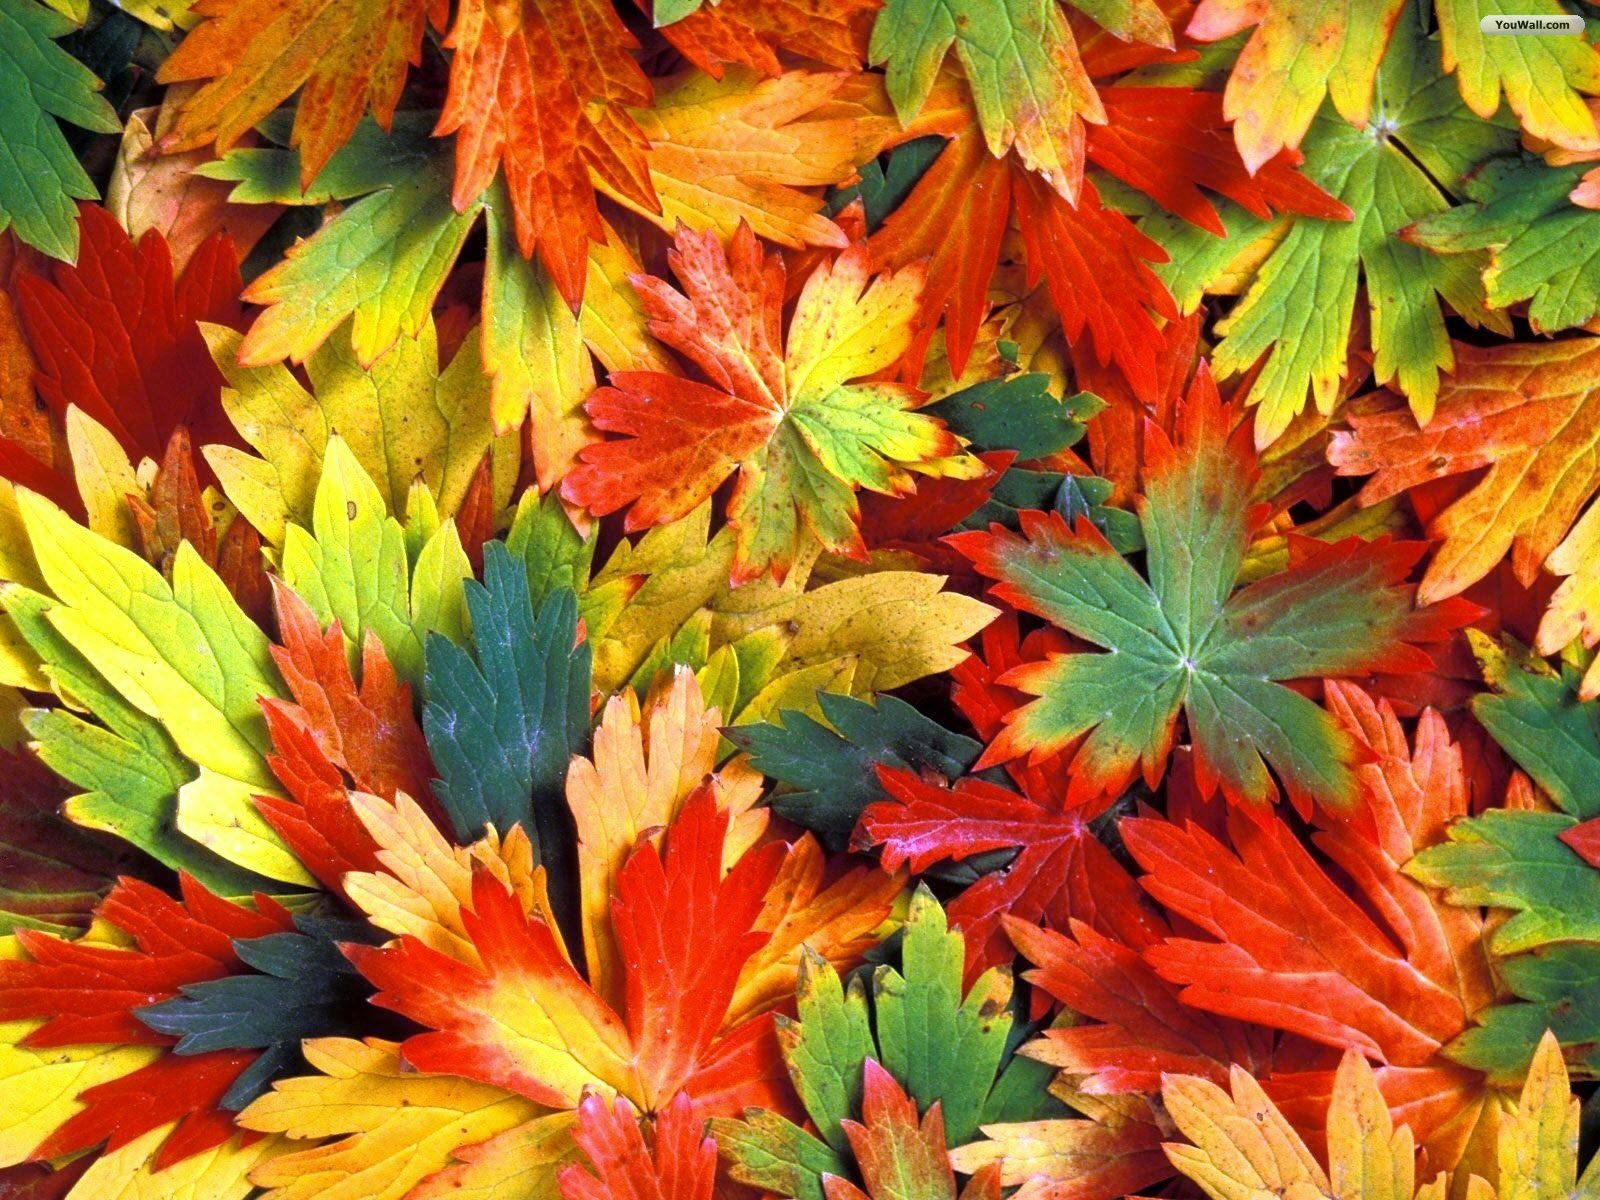 Colorful Autumn Leaves Hd Images 3 HD Wallpapers